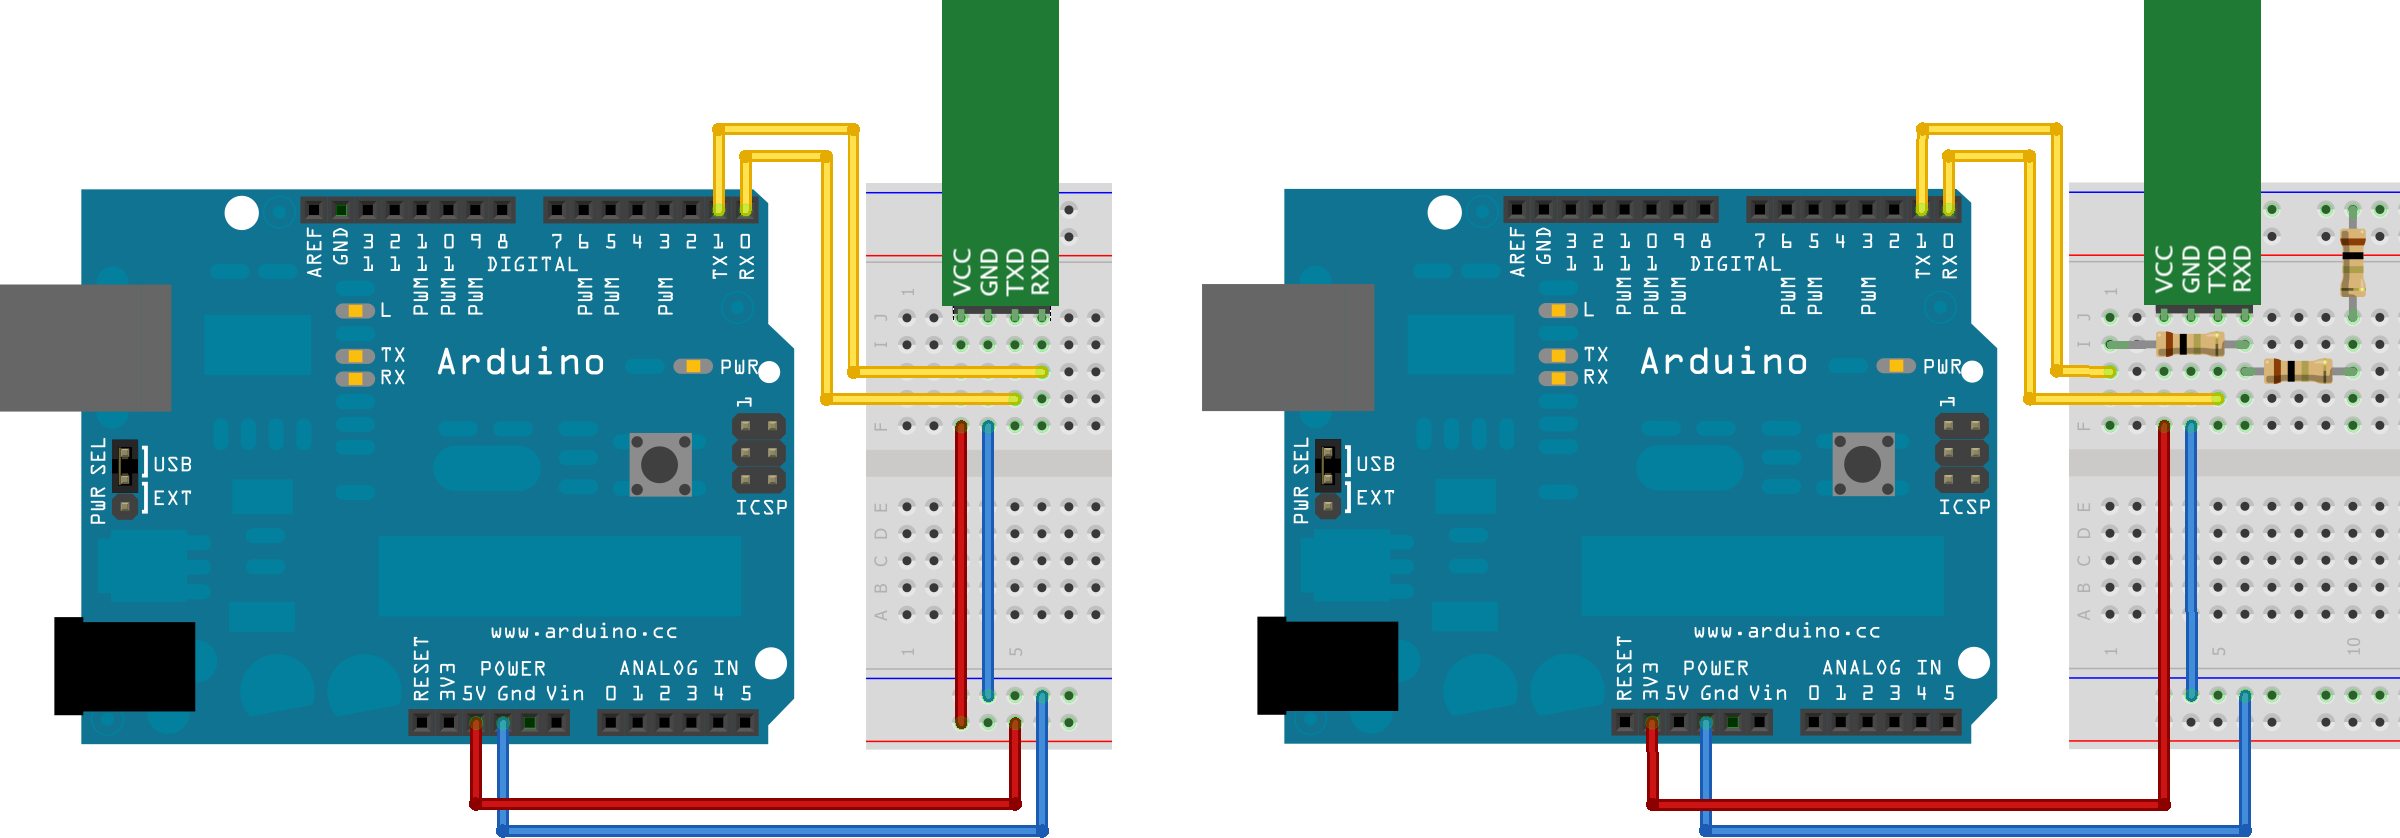 How to add Bluetooth to your Arduino Project with BTduino | Marian's